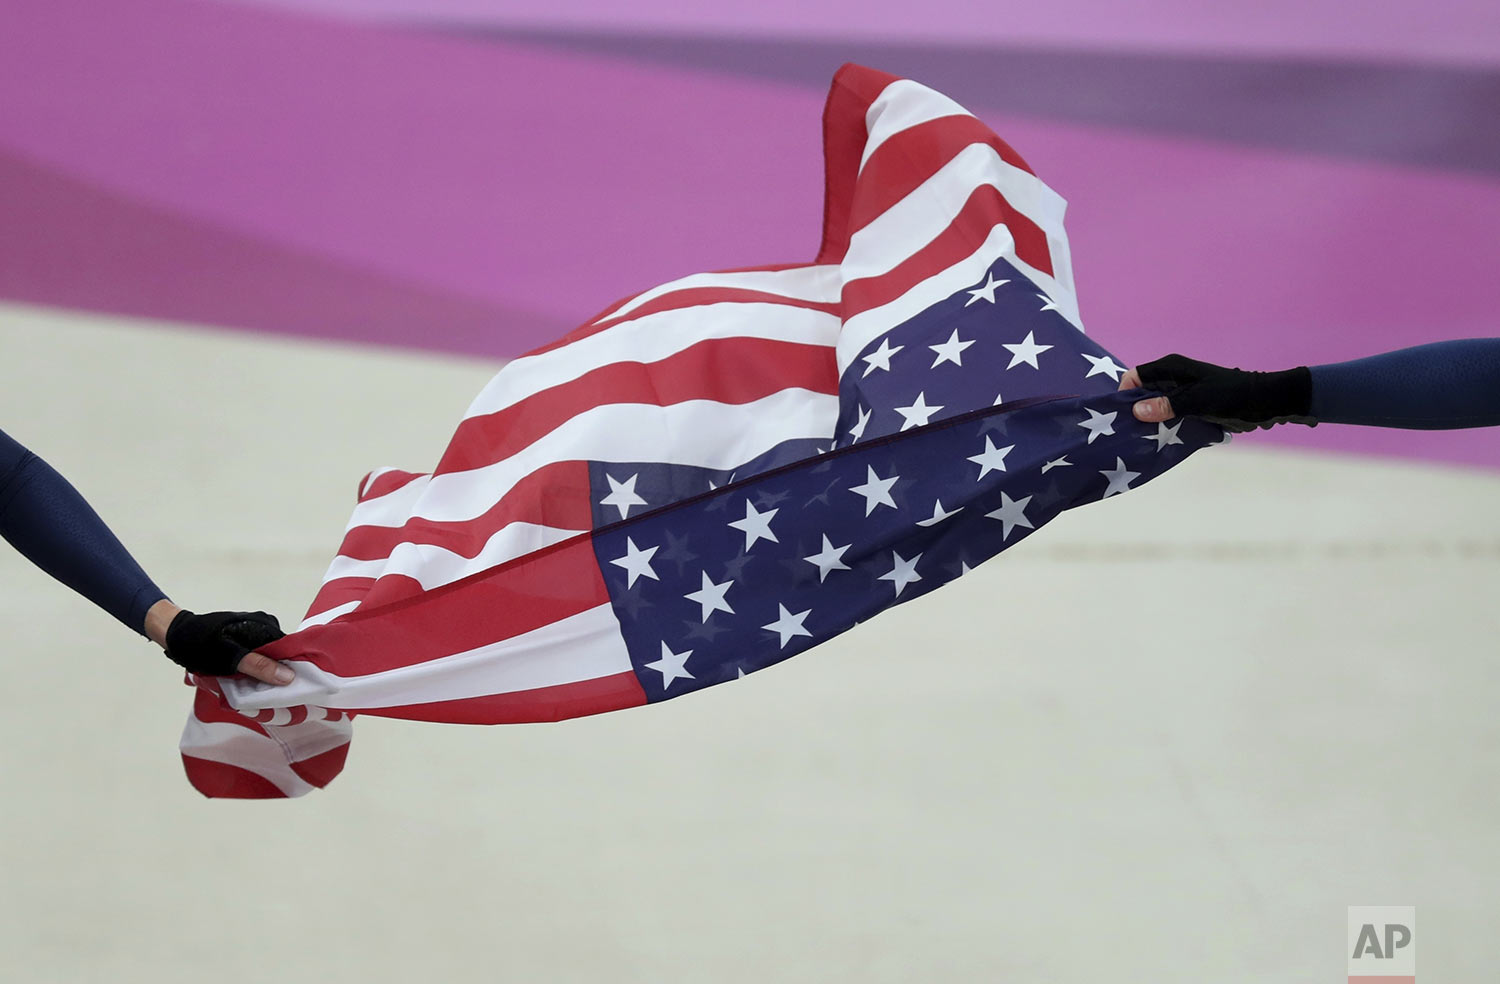 Kimberly Geist, left, and Christina Birch, of the United States, hold their nation's flag to celebrate winning the gold in women's Madison track cycling at the Pan American Games in Lima, Peru, Sunday, Aug. 4, 2019. (AP Photo/Fernando Vergara)